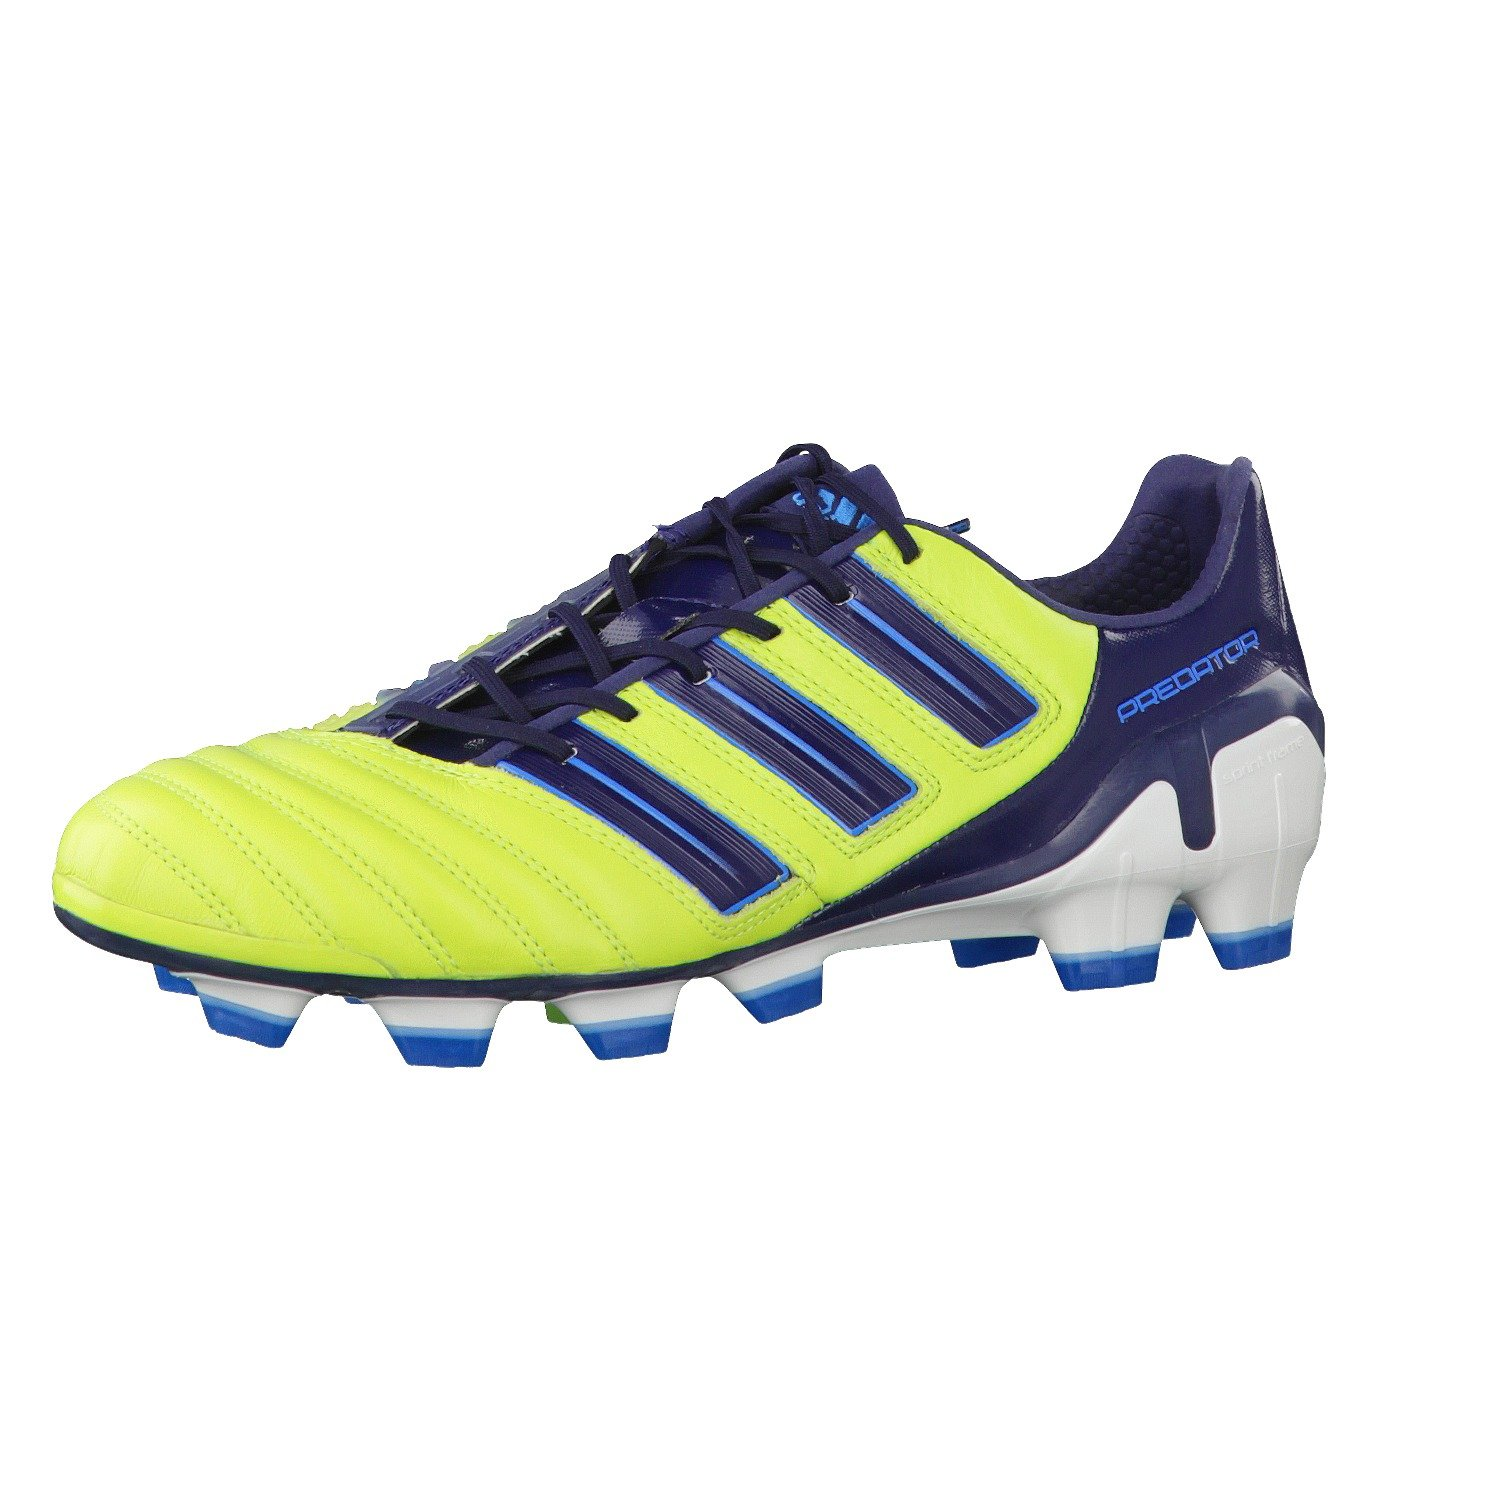 new products 2d97d cd9af Adidas ADIPOWER PREDATOR TRX FG Yellow Leather Men Football Soccer Shoes ...